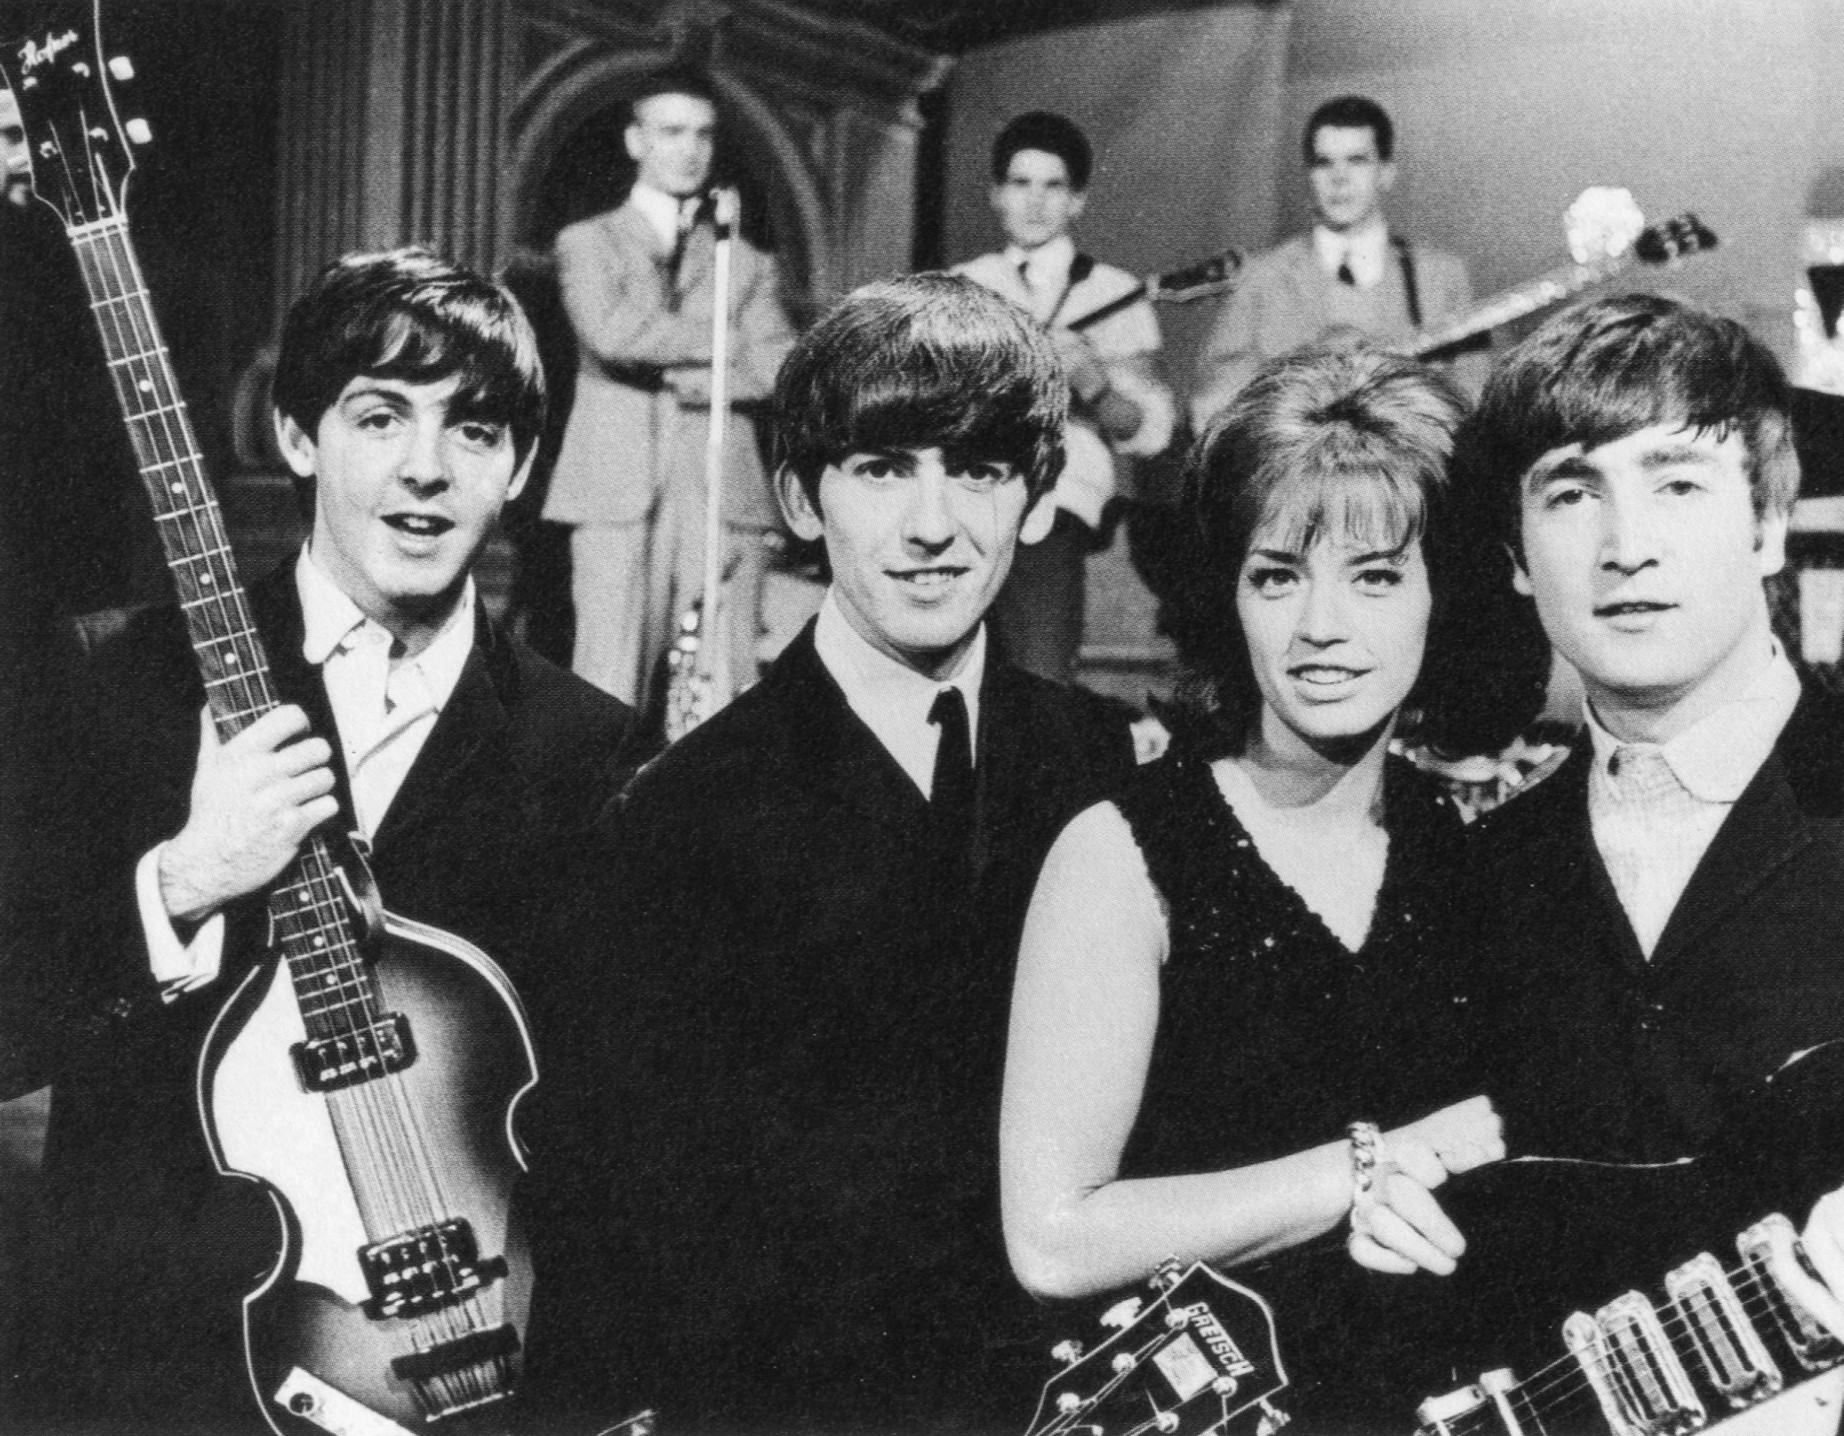 Lill-Babs and The Beatles took part in the Swe...